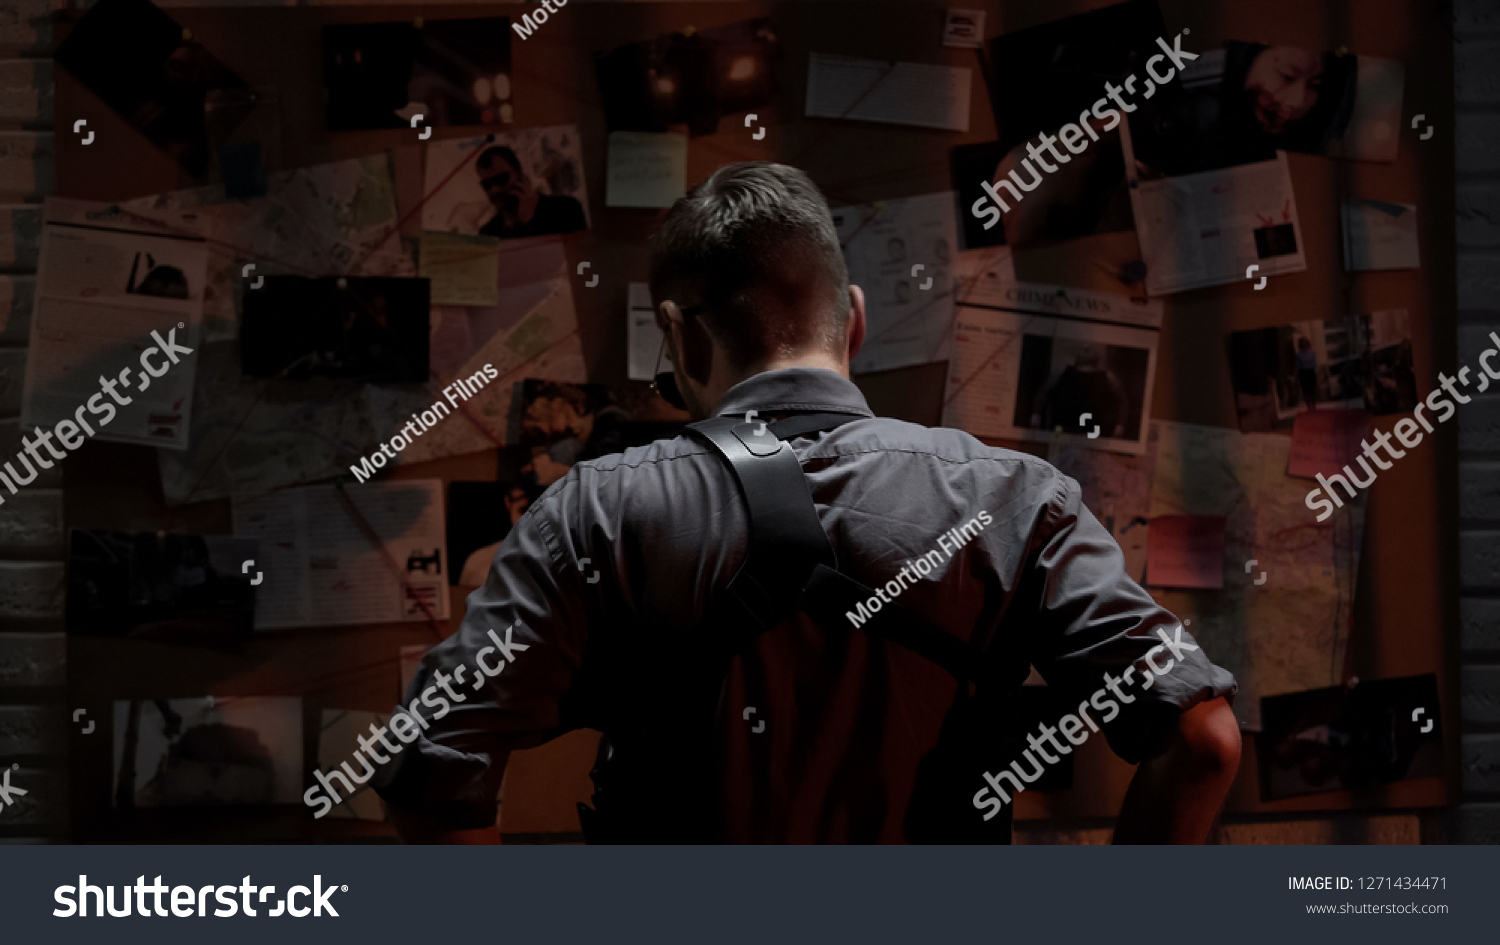 Detective looking at investigation board, searching for solution, back view #1271434471